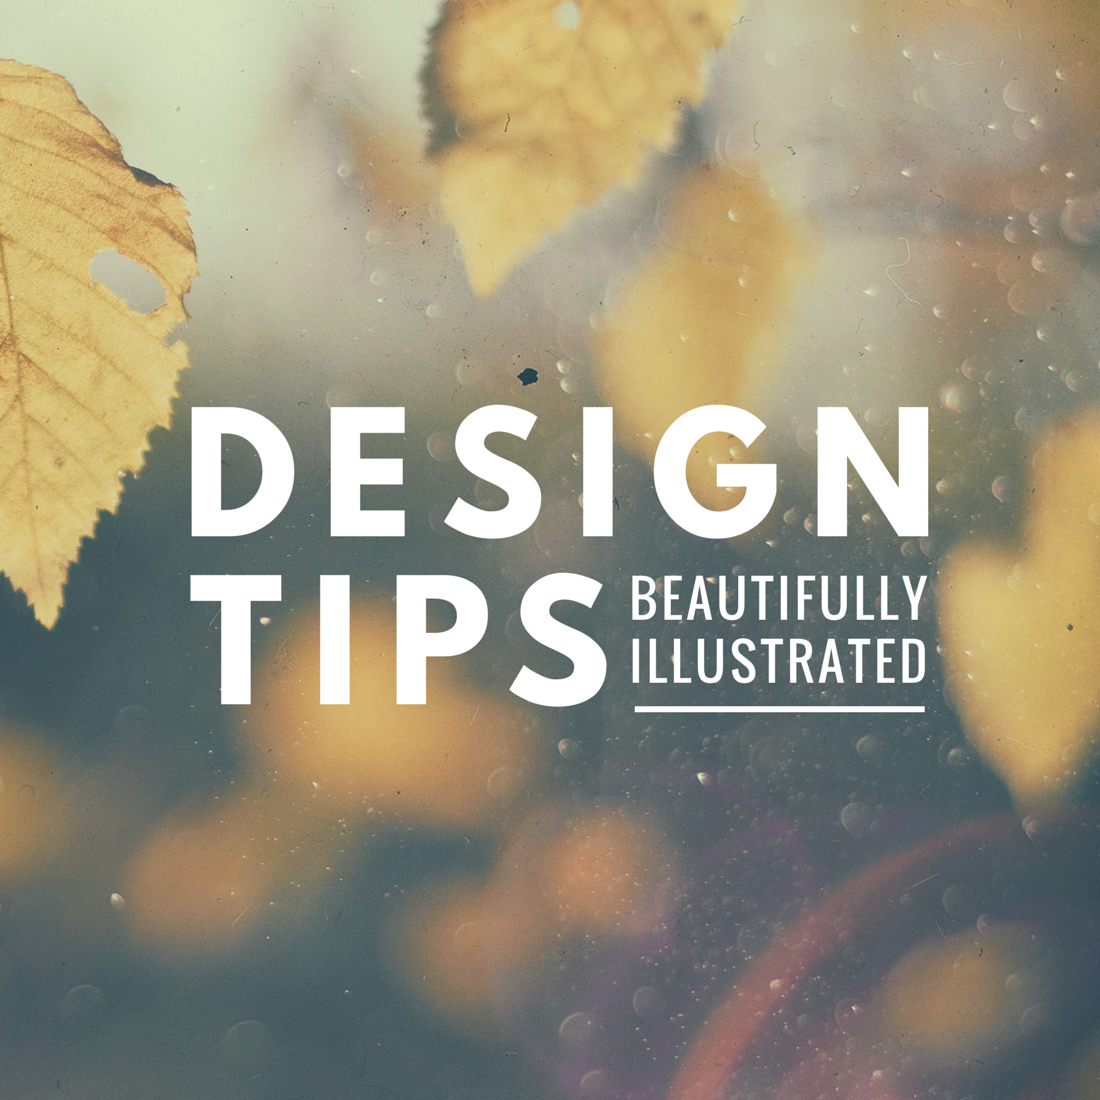 Beautifully Illustrated Design Tips